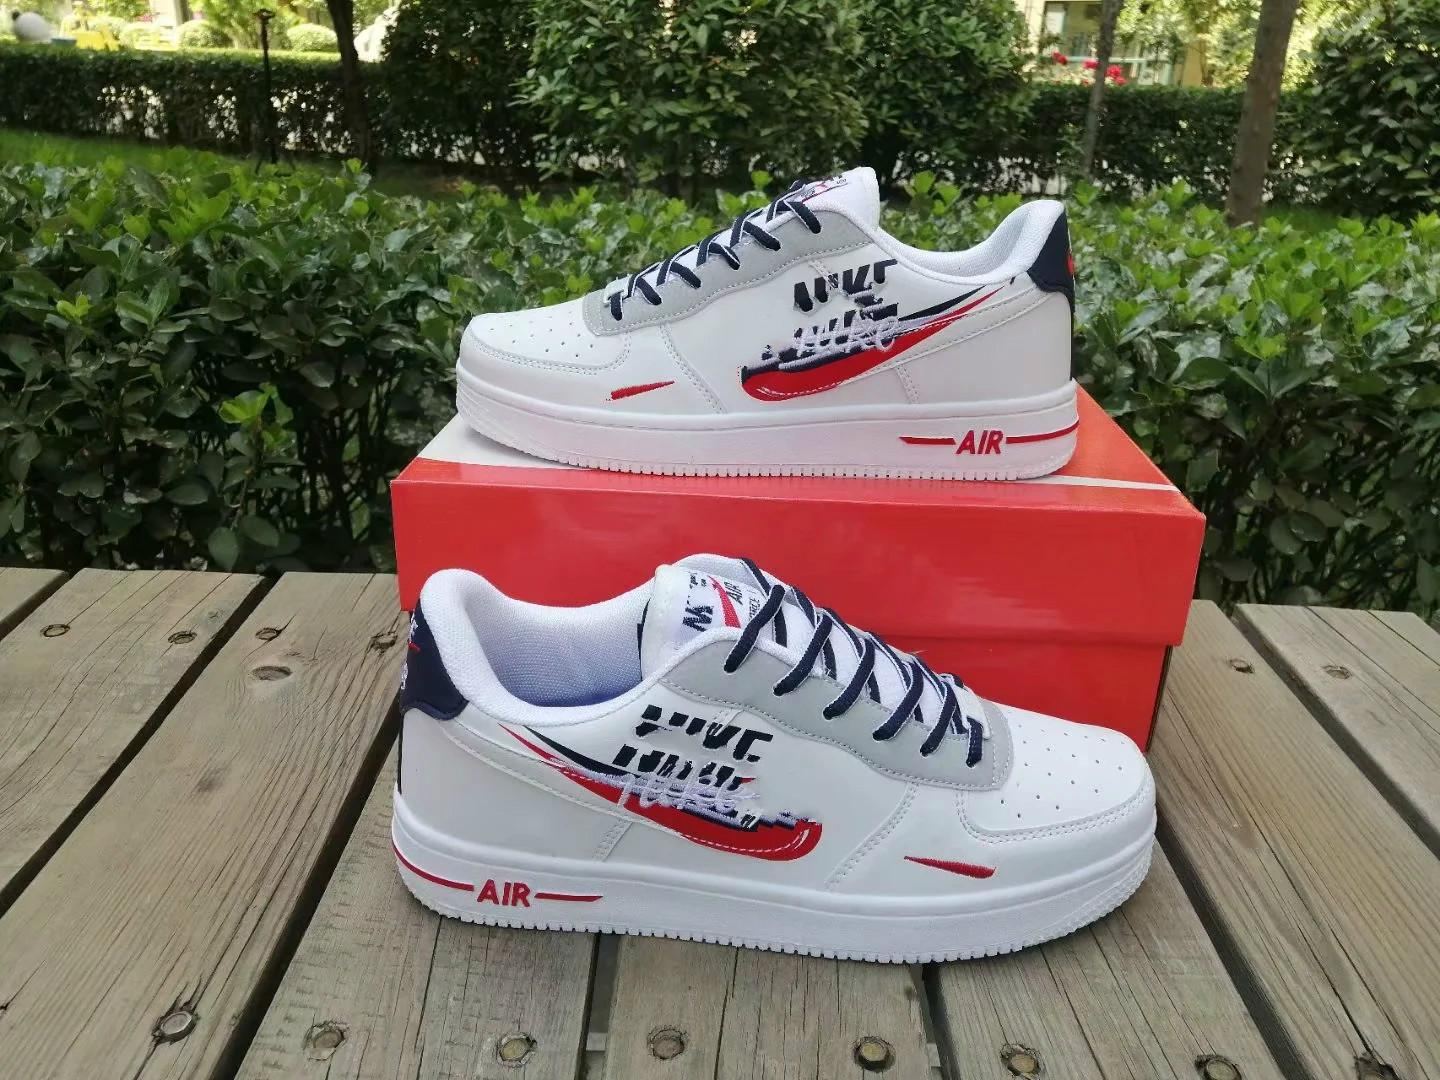 wholesale Top dunk 1 one Athletic & Outdoor runn shoes for big child utility black white basketball skateboarding sports sneakers